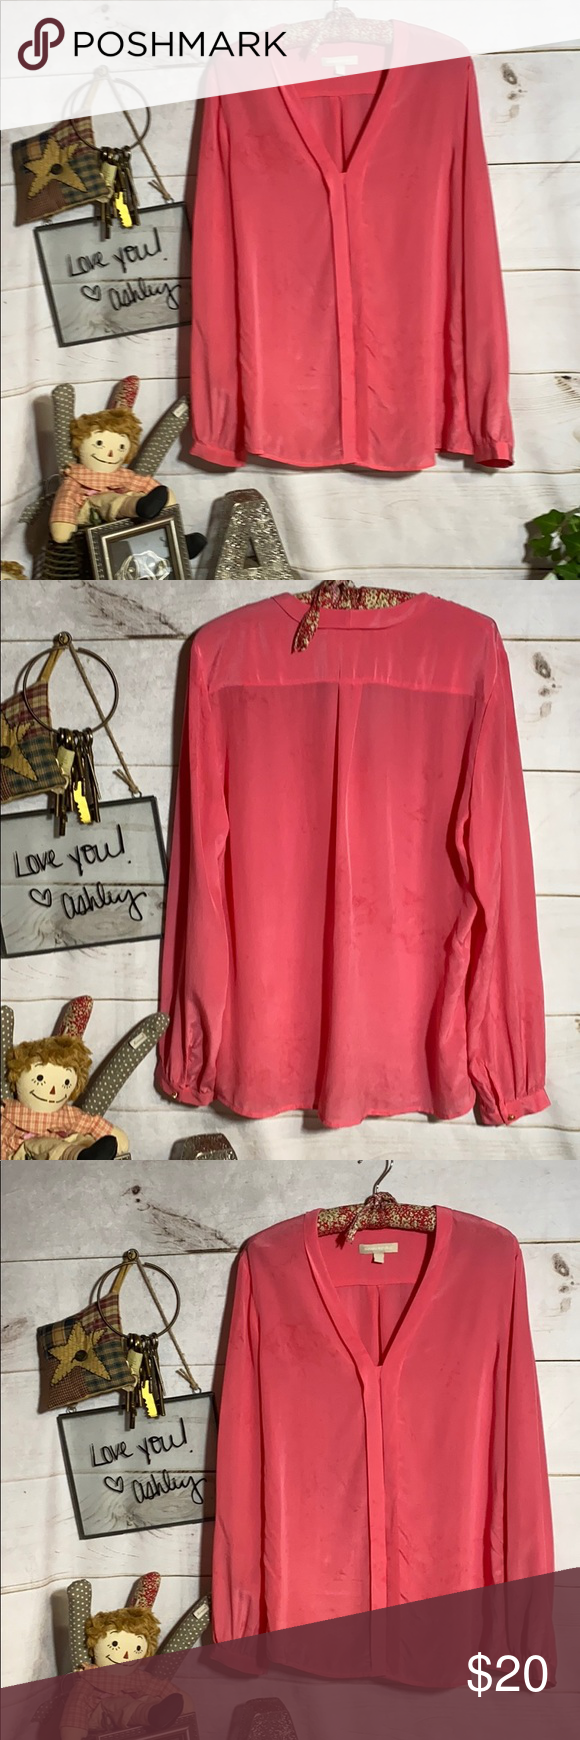 Banana Republic; Silk; Pink Blouse; Top; Shirt; 12 Banana Republic; Silk; Pink; Blouse; Top; Shirt; 12 Gorgeous hot pink color; Long sleeves with 1 decorative button on each cuff;  v-neck; 5 hidden buttons - center front closure; 100% silk; dry clean only!! Beautiful Silk Blouse!!!  Color is gorgeous!! This will be your new favorite blouse!! Soft & comfy feeling 😊💕💕💕 Banana Republic Tops Blouses    Source by rocojz21 #Banana #Blouse #Pink #pink Blouses #Republic #shirt #Silk #Top